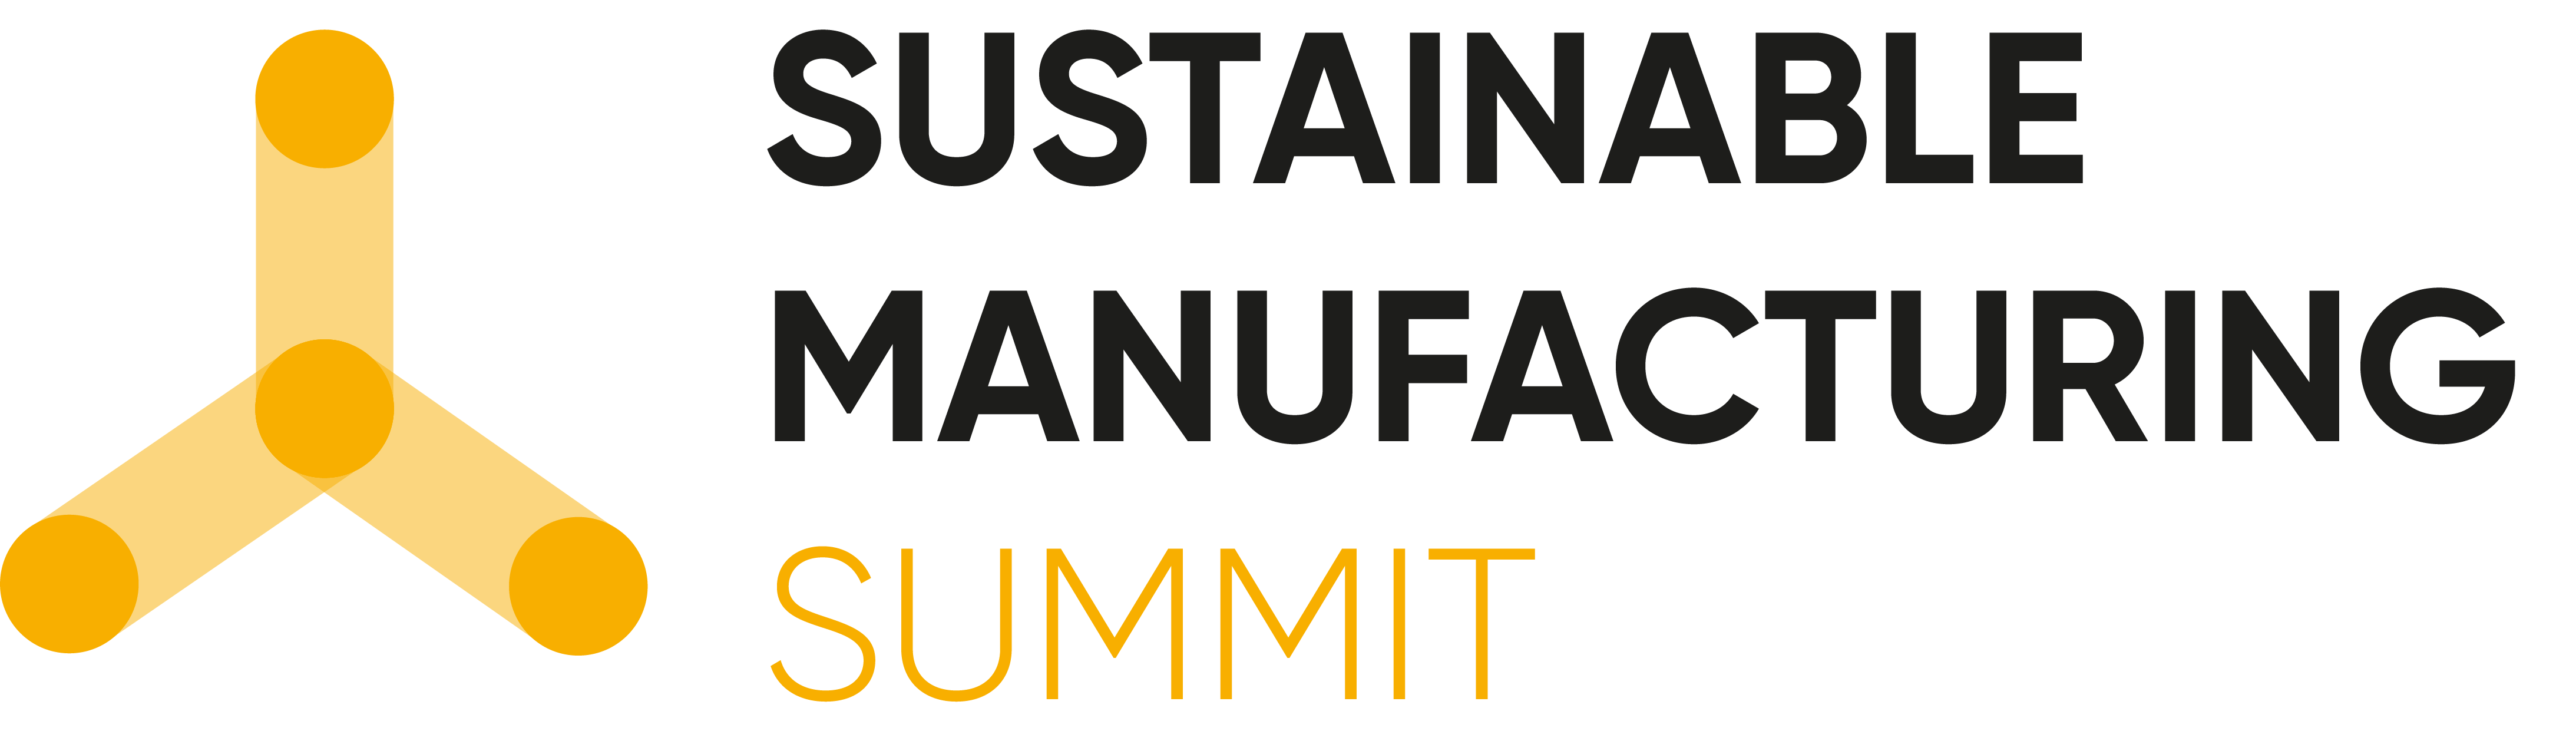 Sustainable Manufacturing Summit